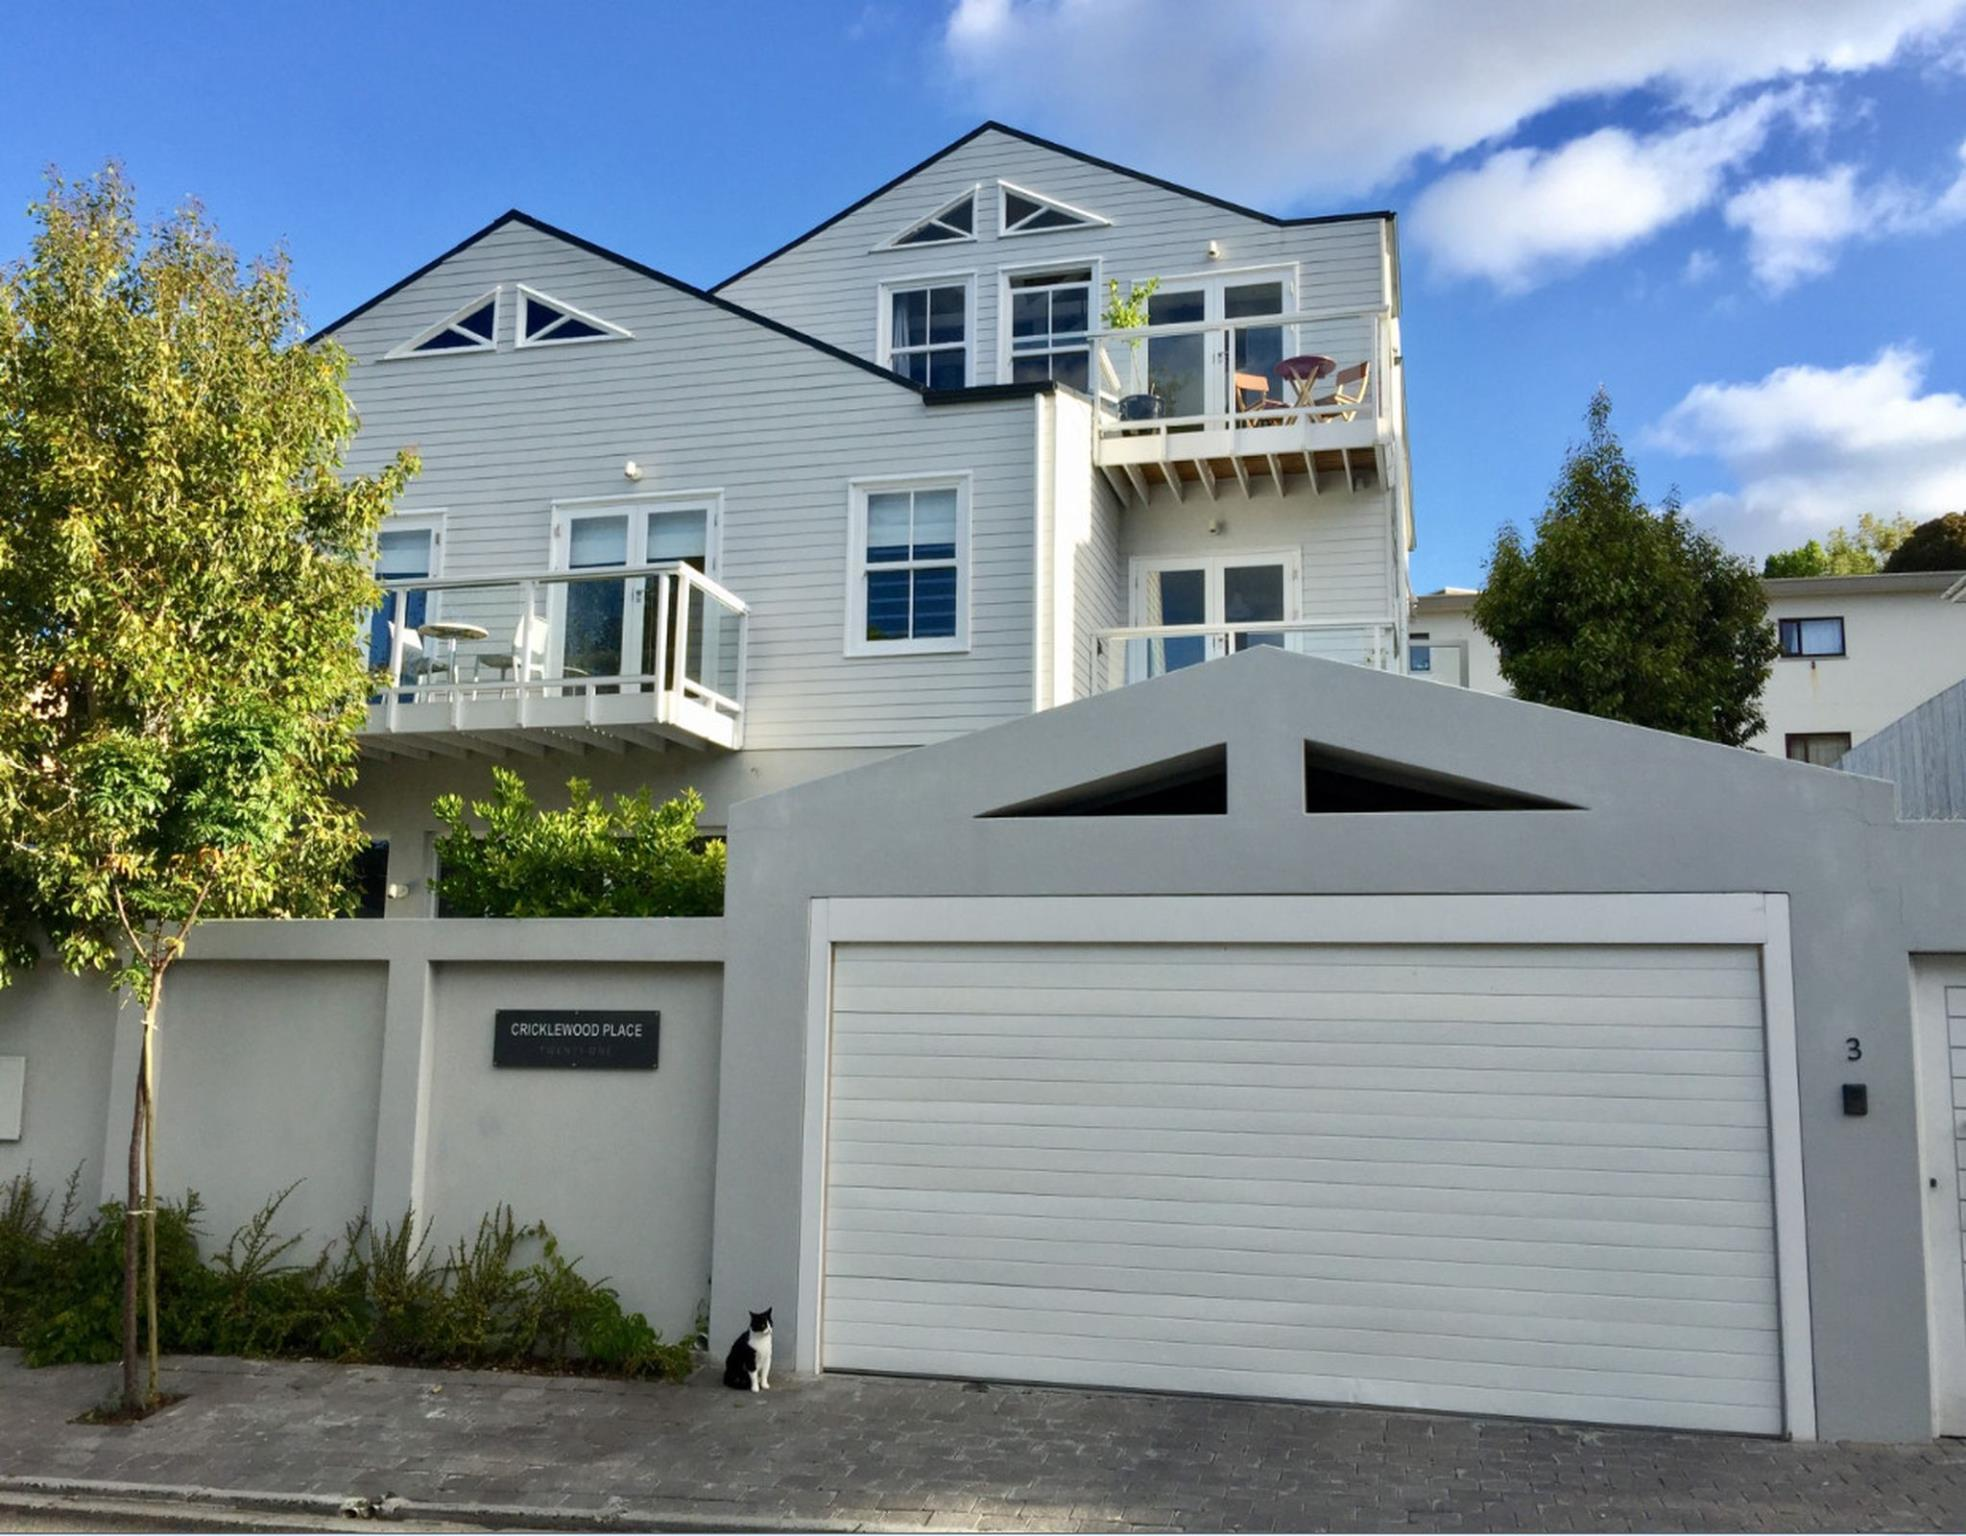 Cricklewood Place � Luxury Holiday Home